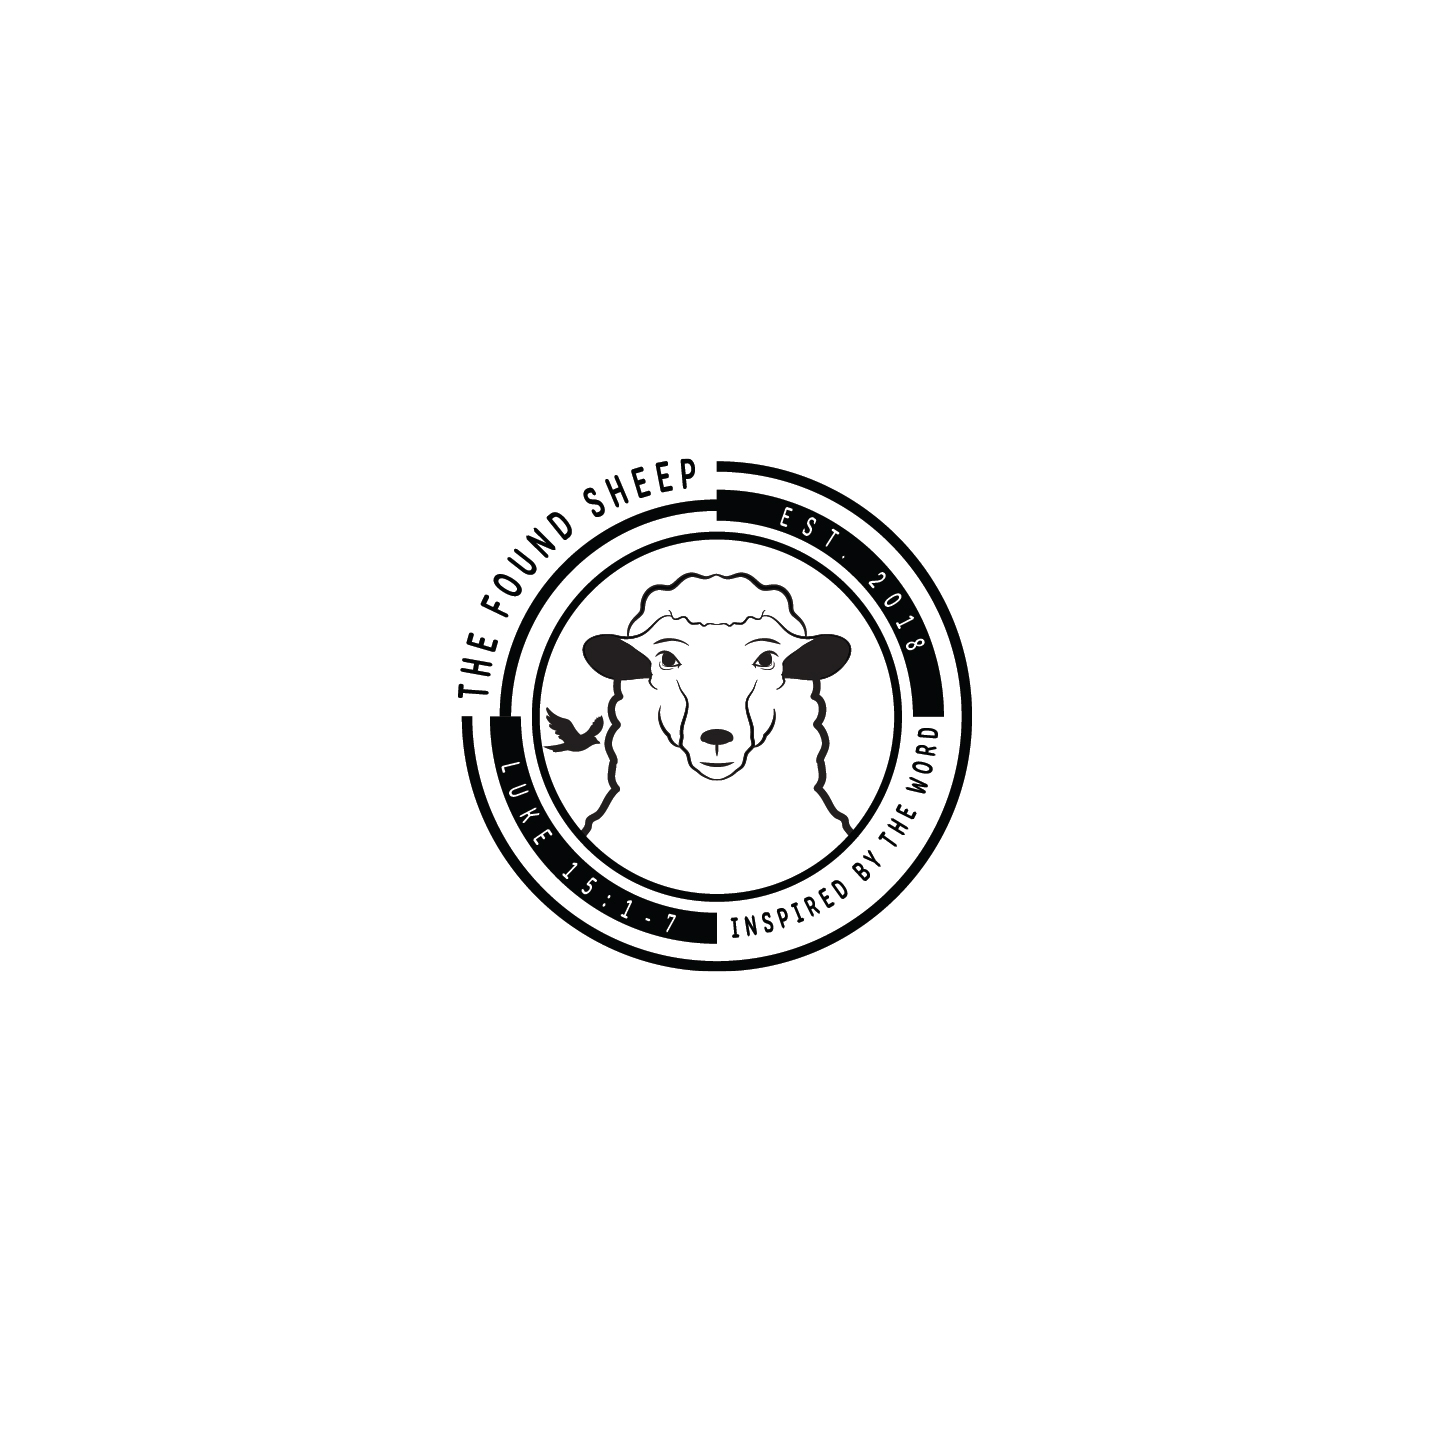 REVISED SHEEP LOGO.jpg